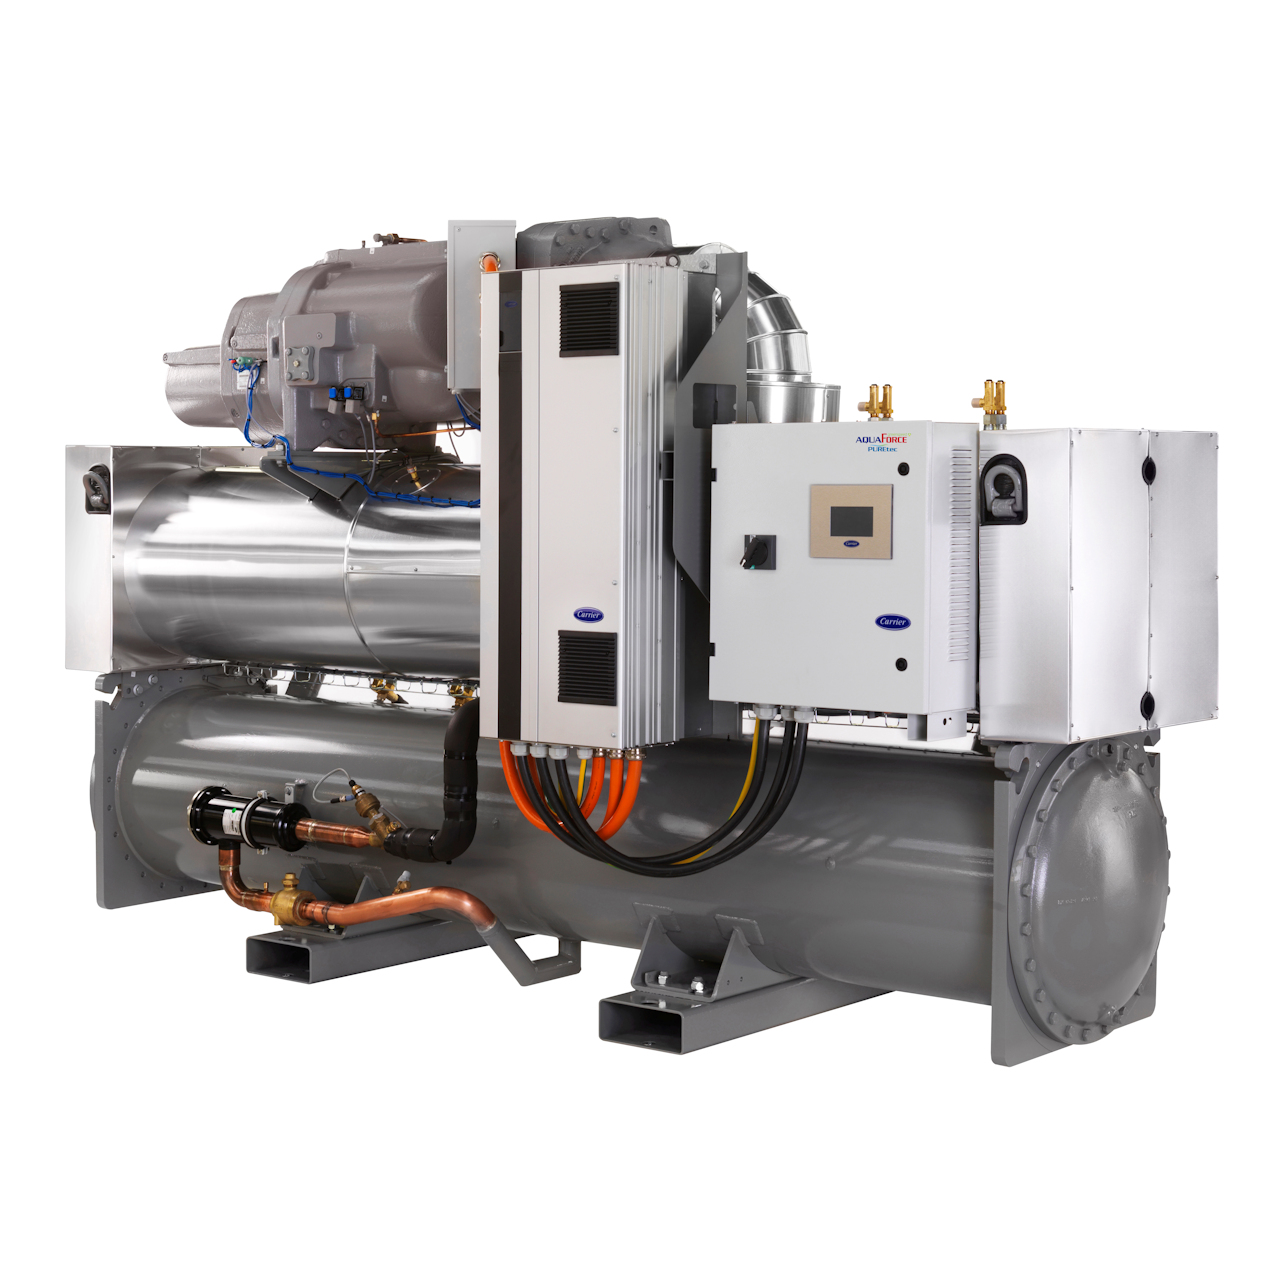 carrier-30XWHVZE-water-cooled-chiller-water-sourced-heat-pump-screw-variable-speed-hfo-refrigerant